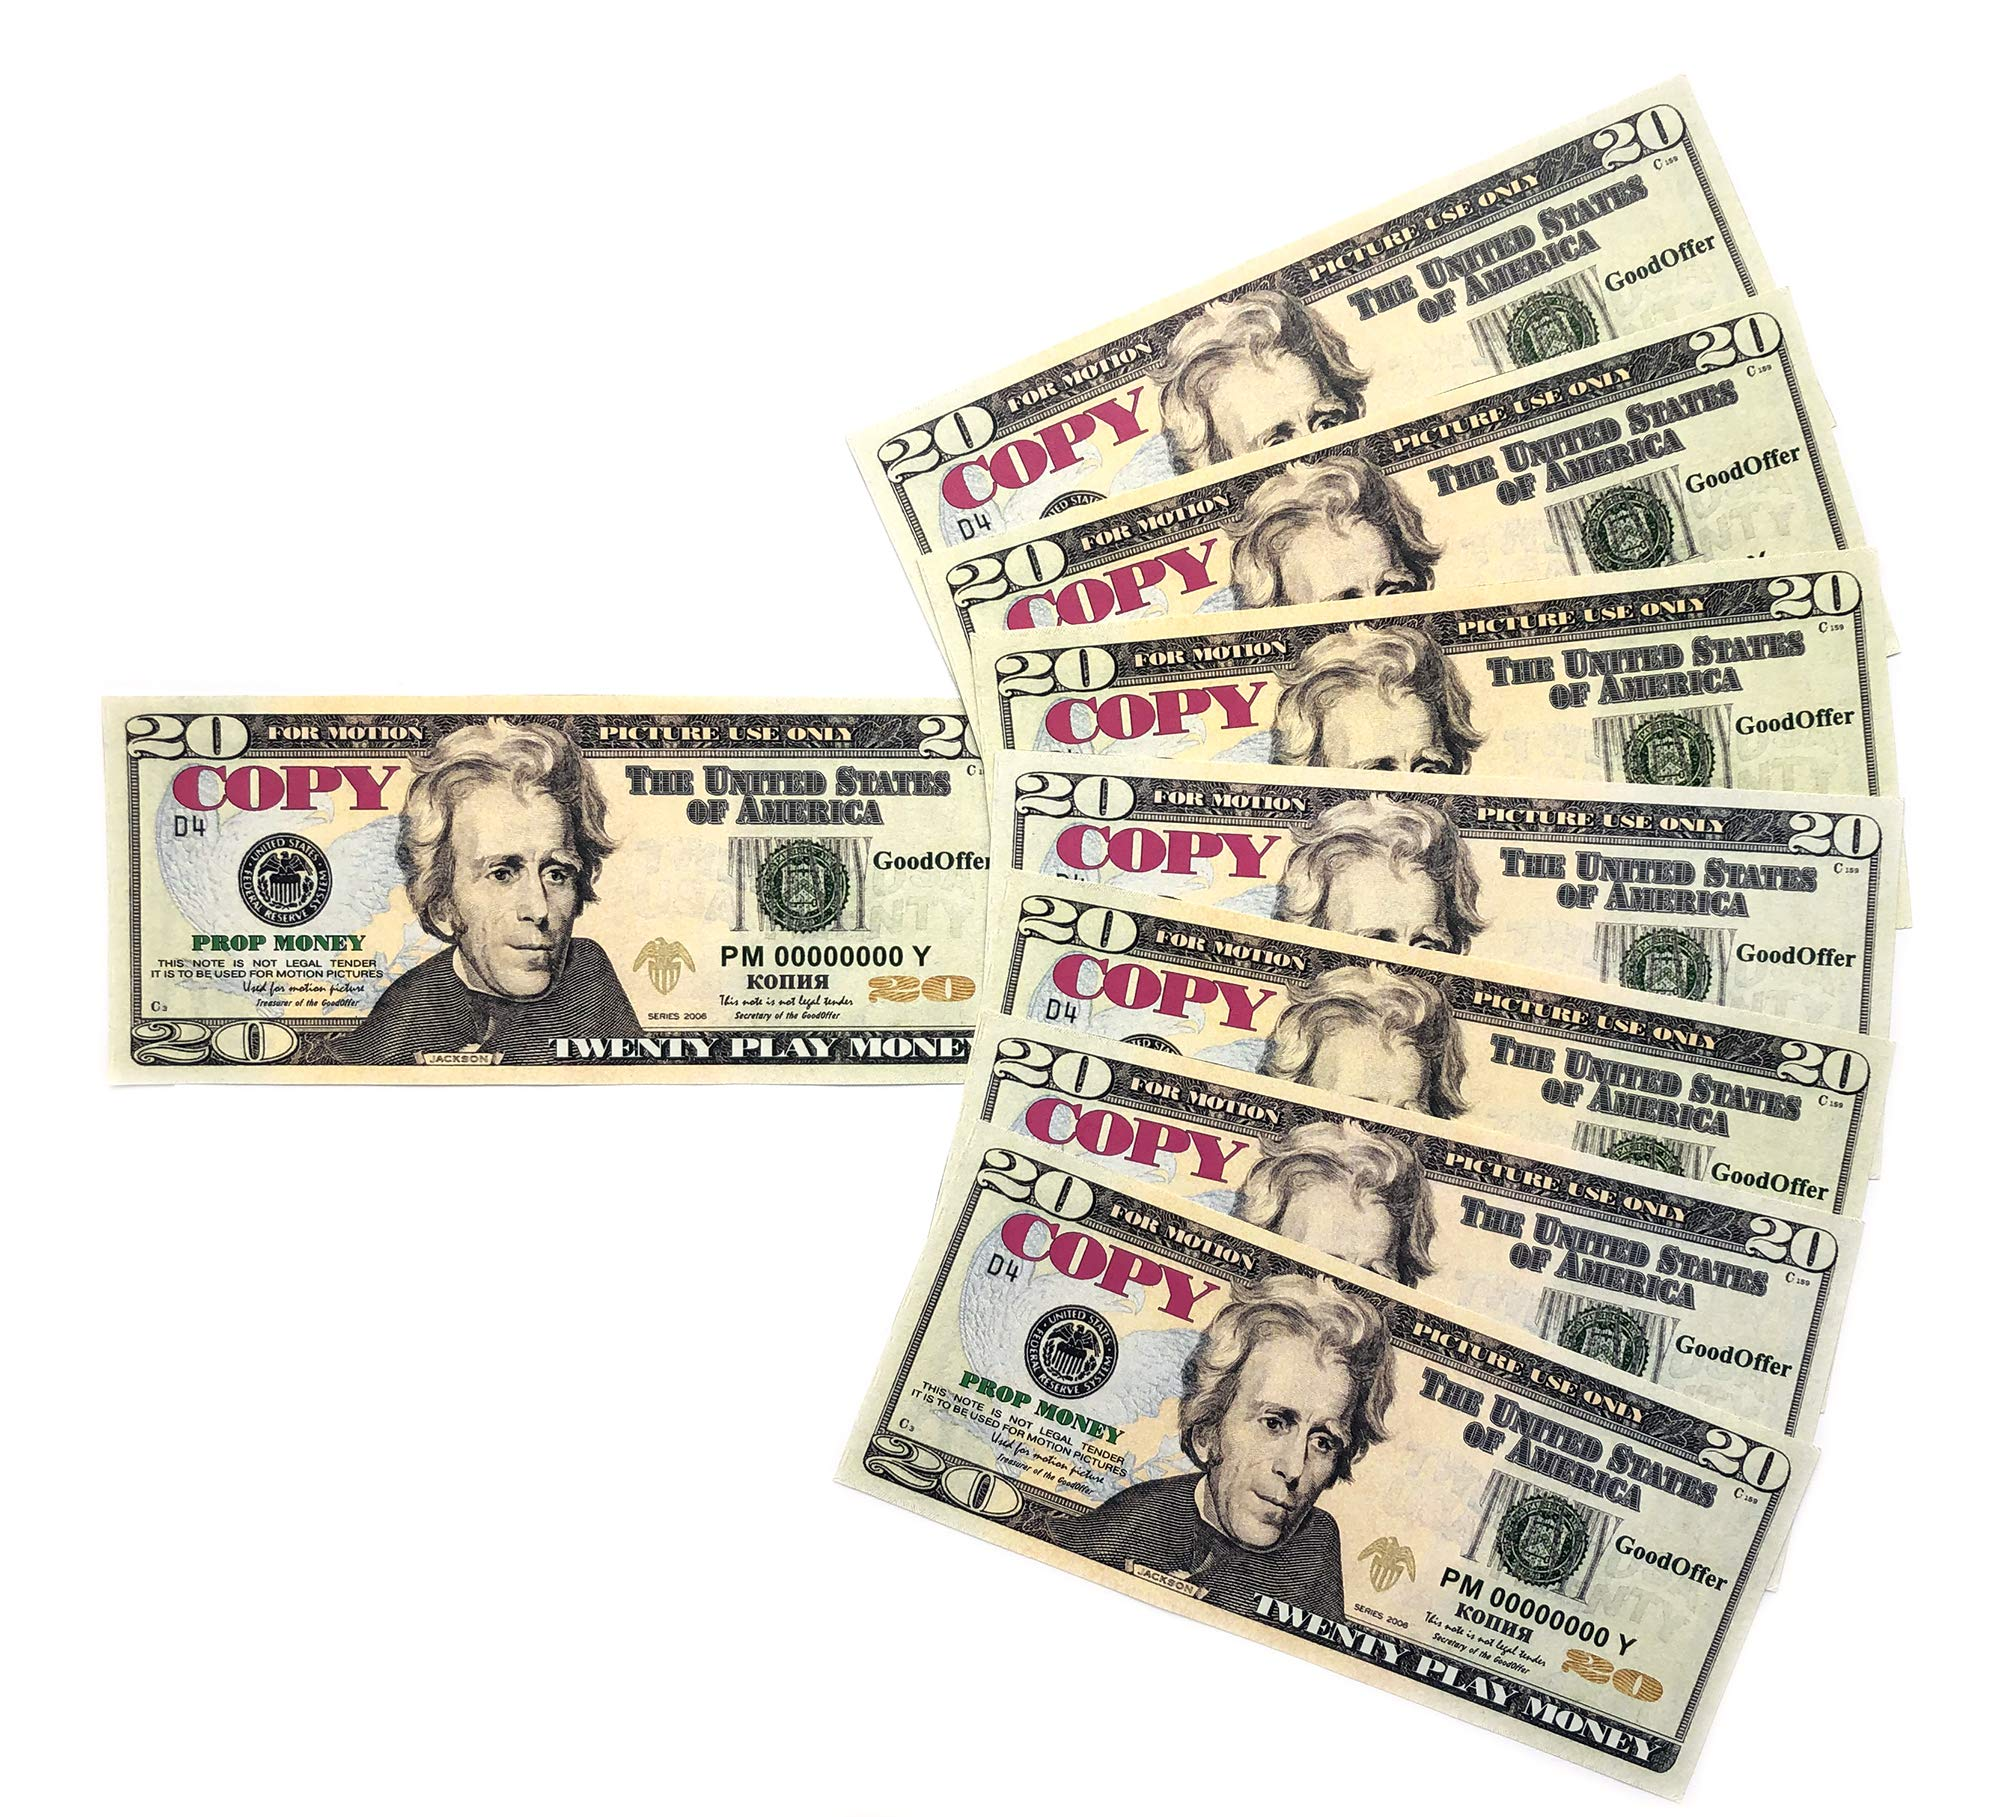 GoodOffer 20 Dollars Play Money - Realistic Prop Money 100 pcs. - Total of $2,000 Copy Money with Two Sides for Pranks, Games, Monopoly - Educational Play Money for Kids - Prop Twenty Dollar Bills by GoodOffer